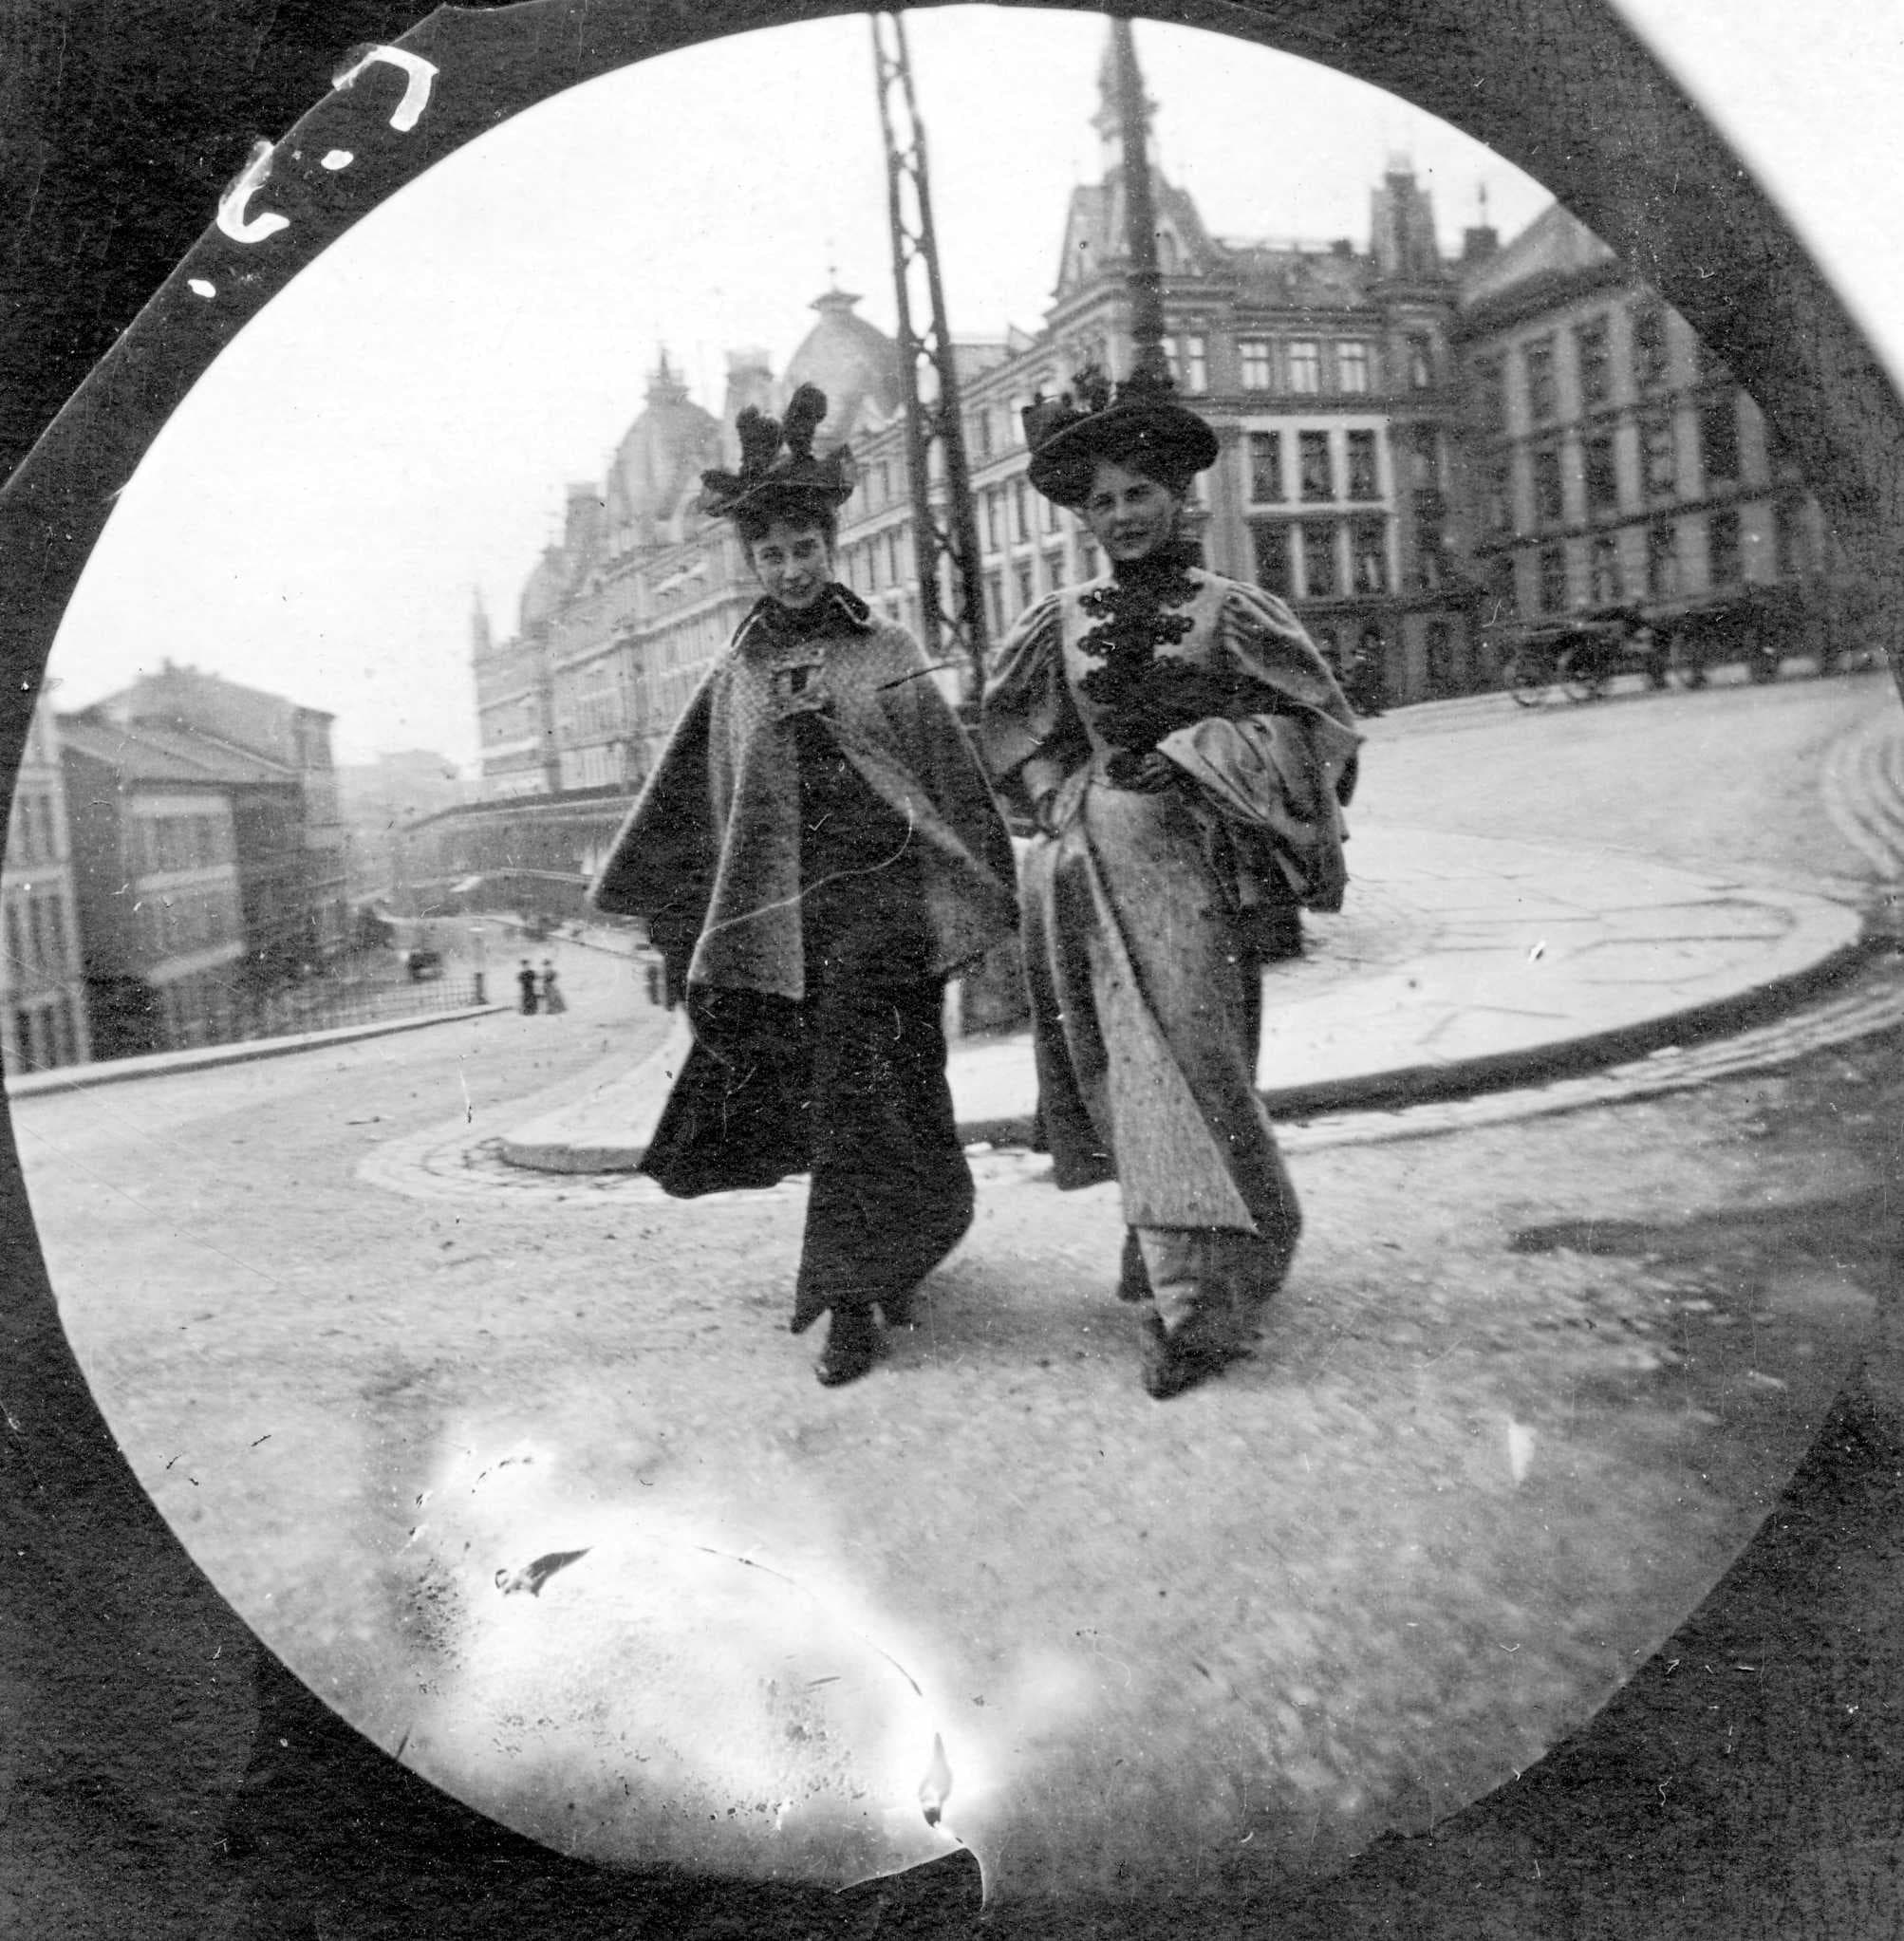 This 19-Year-Old Used a Spy Camera to Take Candid Photos on the Street in the 1890s